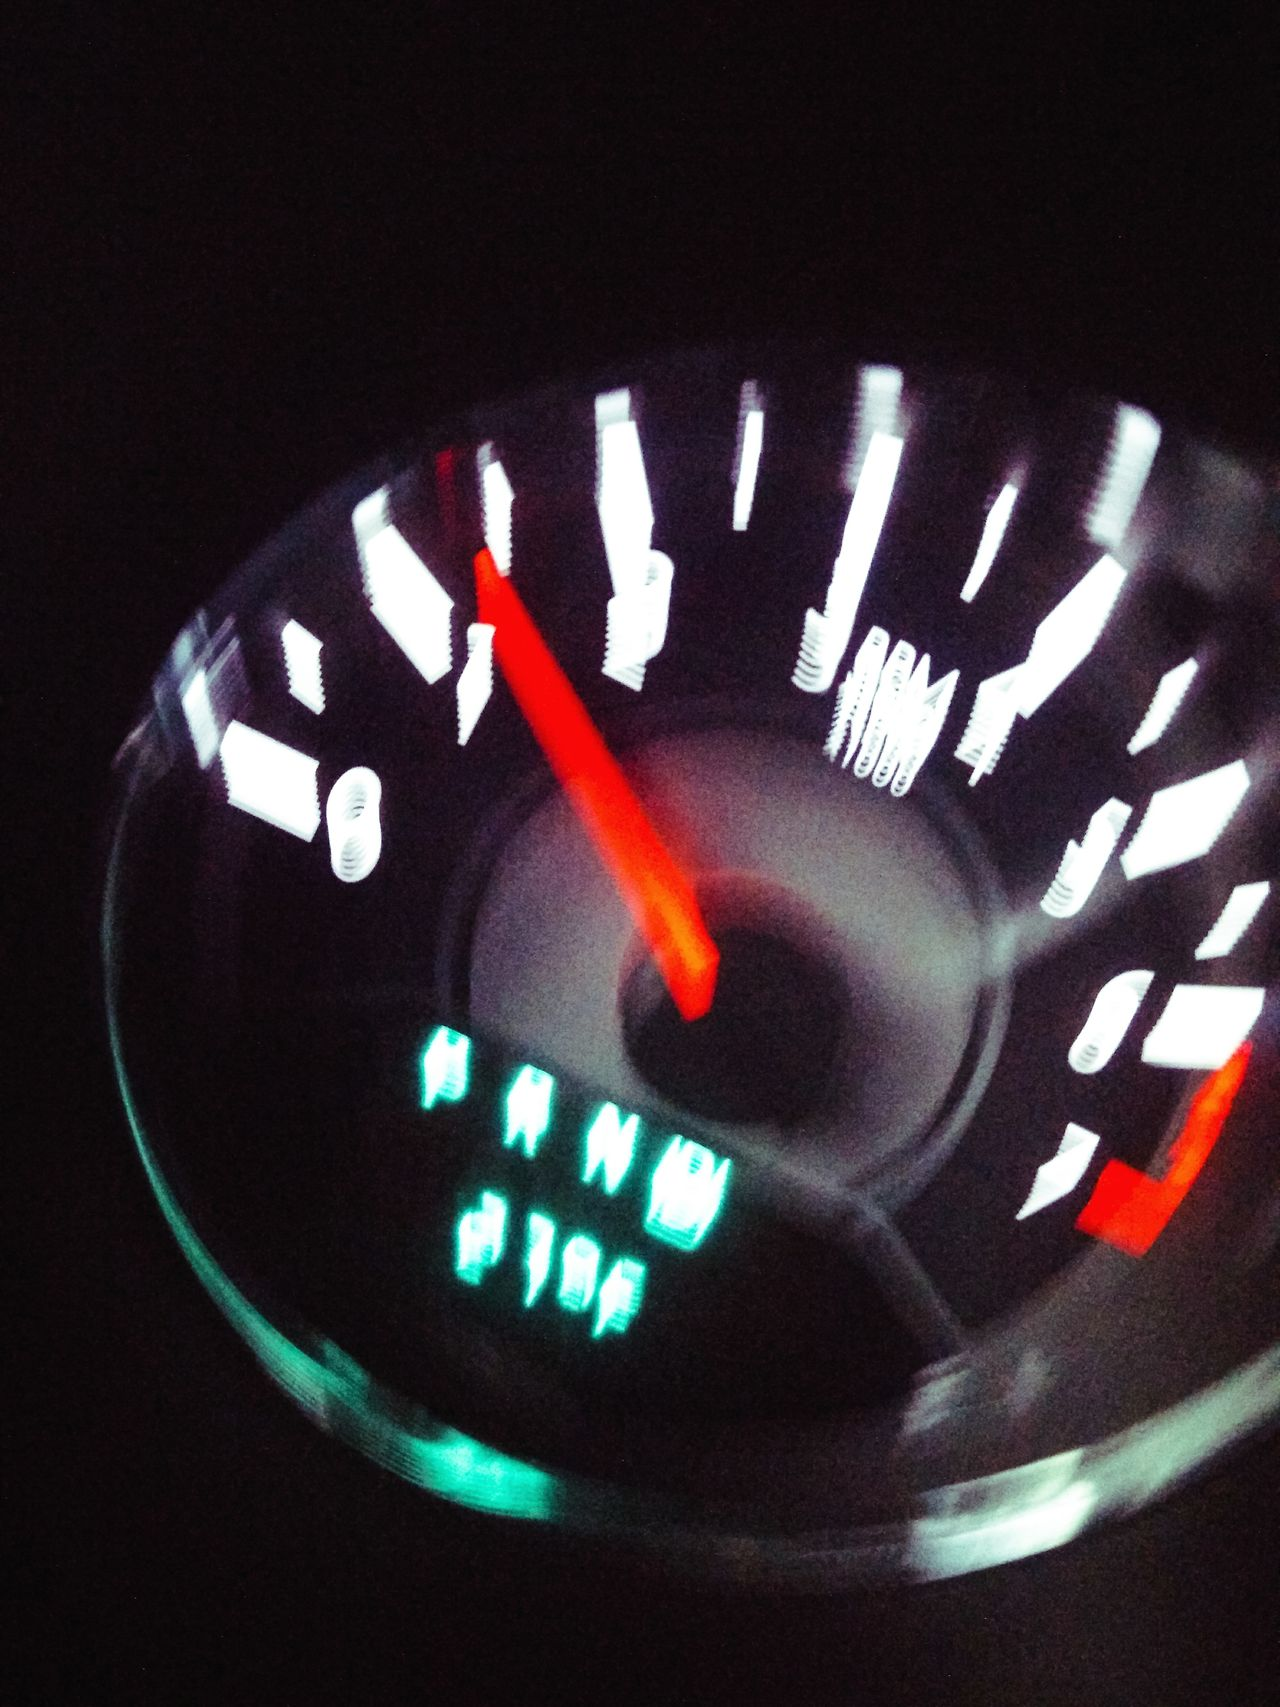 Number Close-up Speedometer Transportation Gauge Illuminated Car Interior Dashboard No People Control Panel Night Glitch